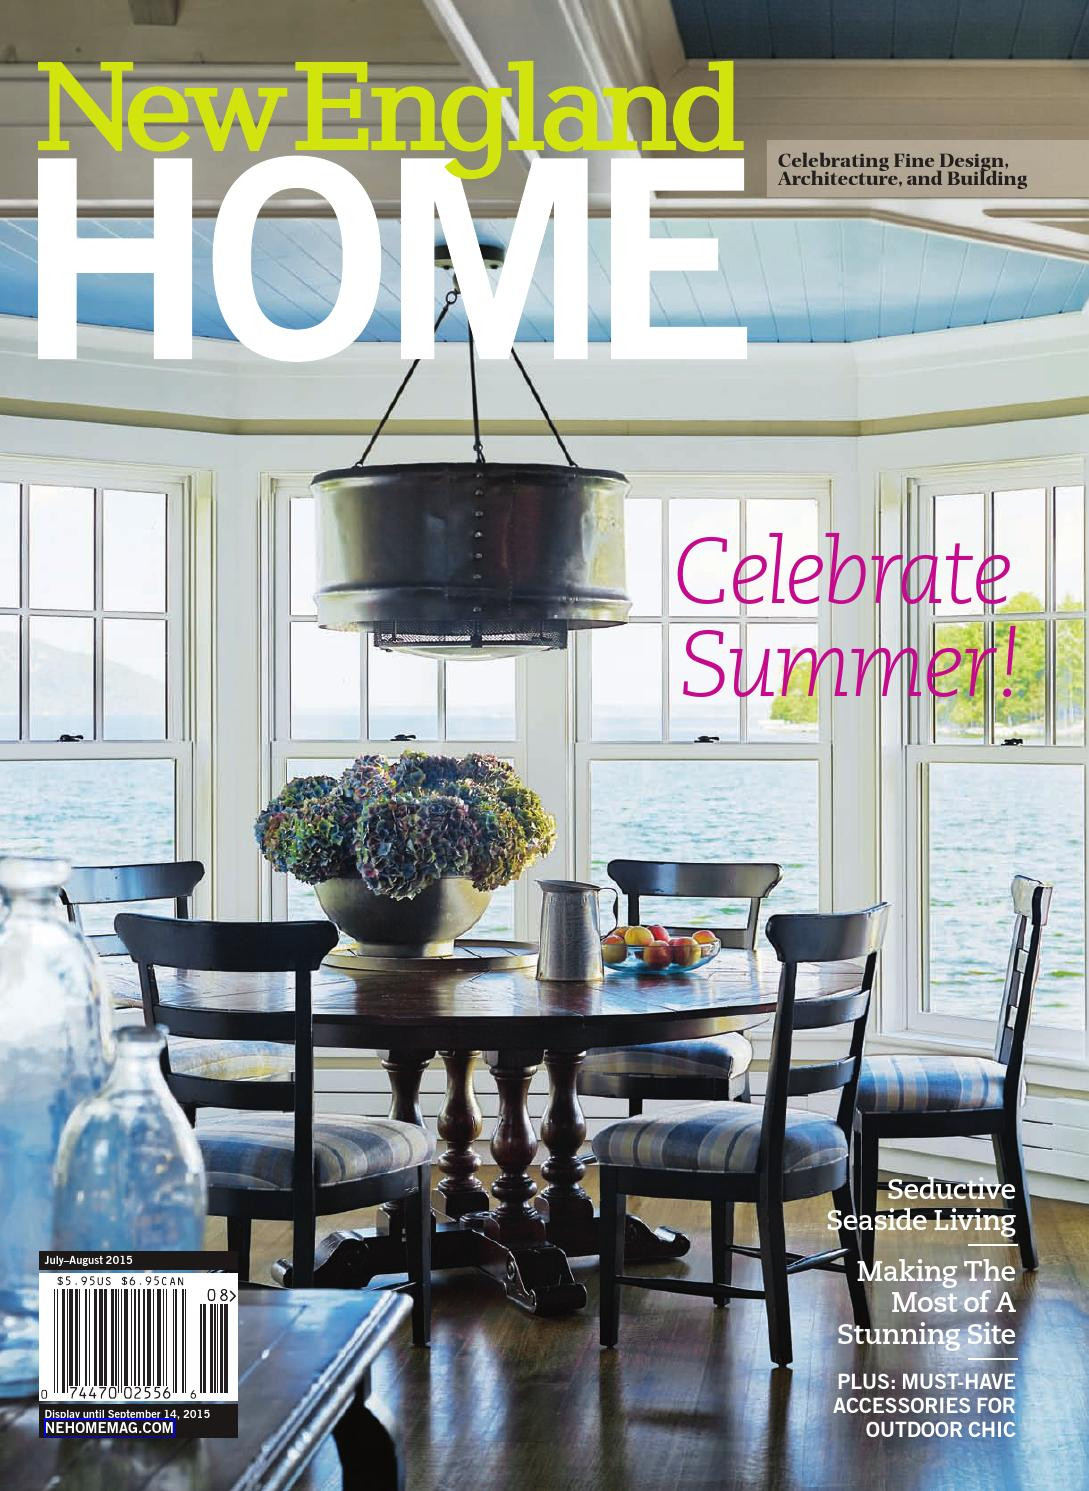 Weston Hardwood Flooring Vaughan Of New England Home July August 2015 by New England Home Magazine Llc Intended for New England Home July August 2015 by New England Home Magazine Llc issuu